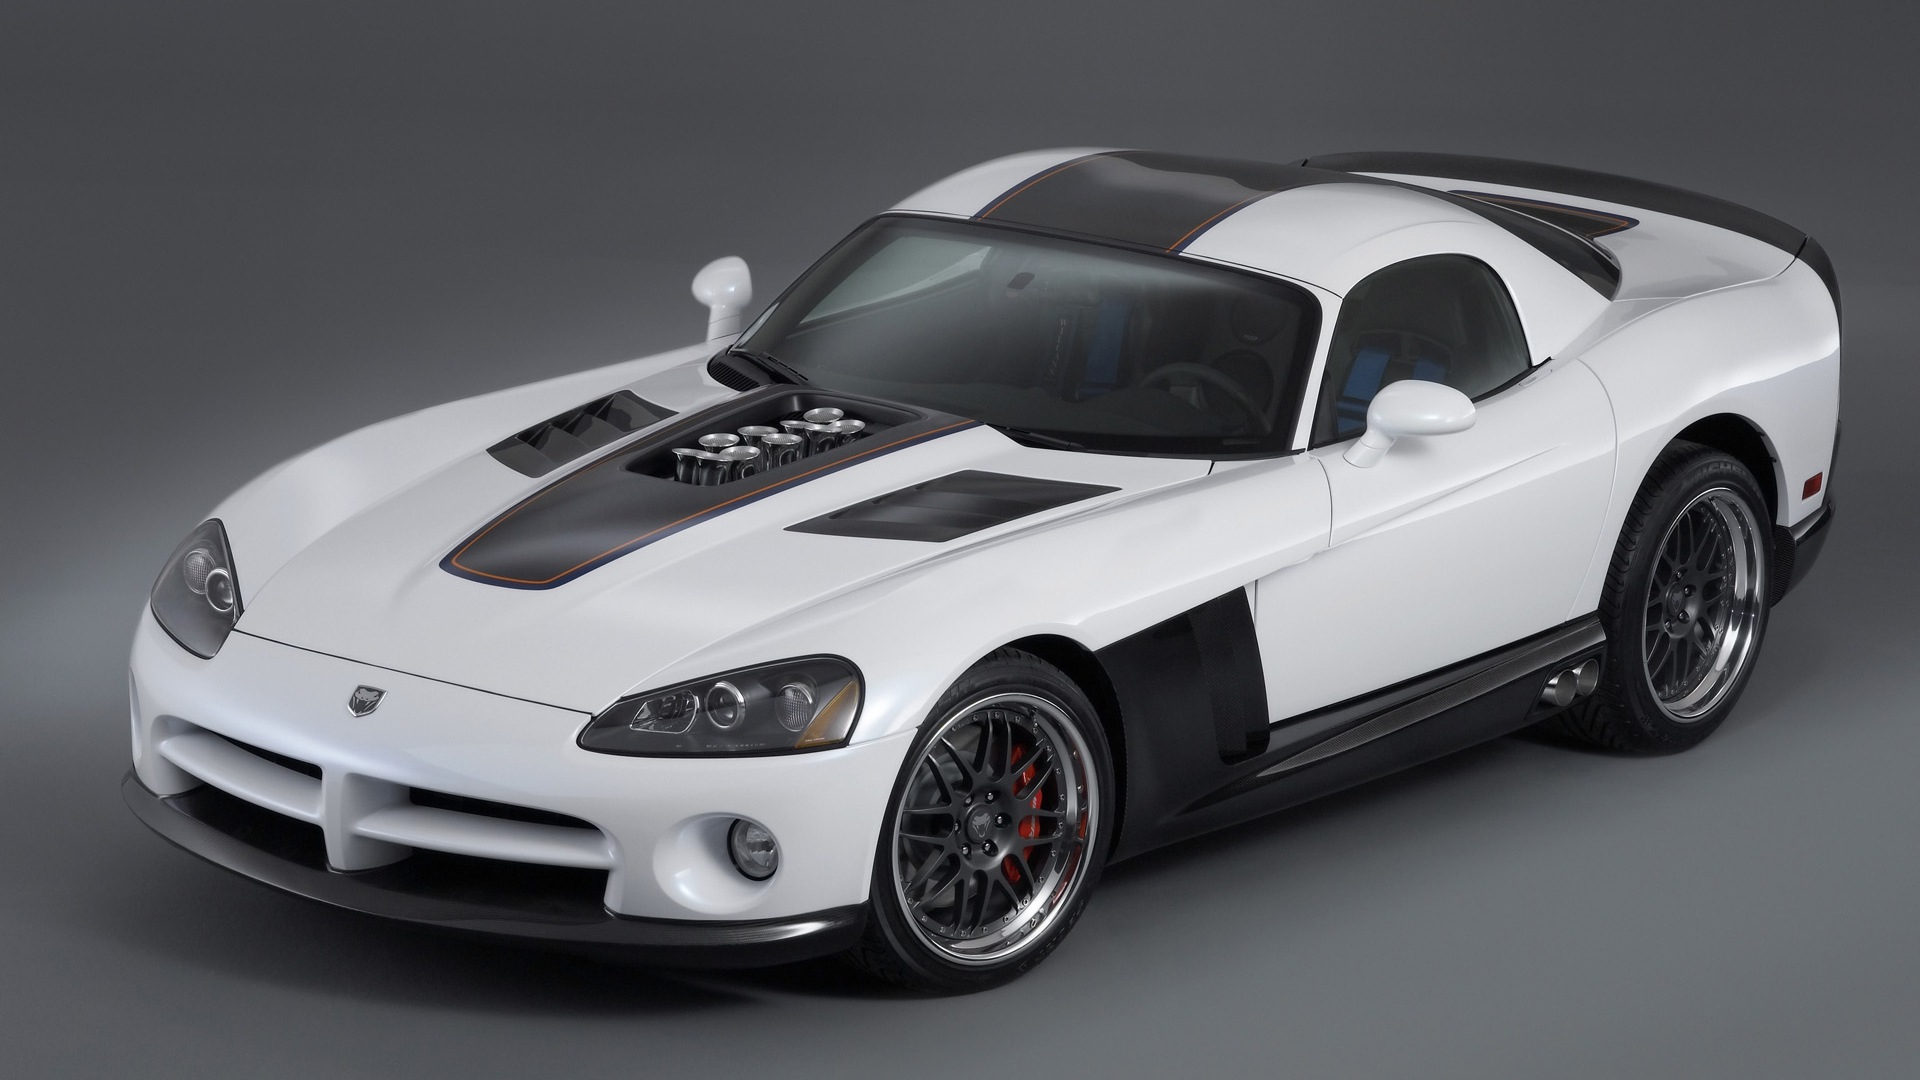 Luxury Vehicle: Black And White Exotic Cars 4 High Resolution Wallpaper